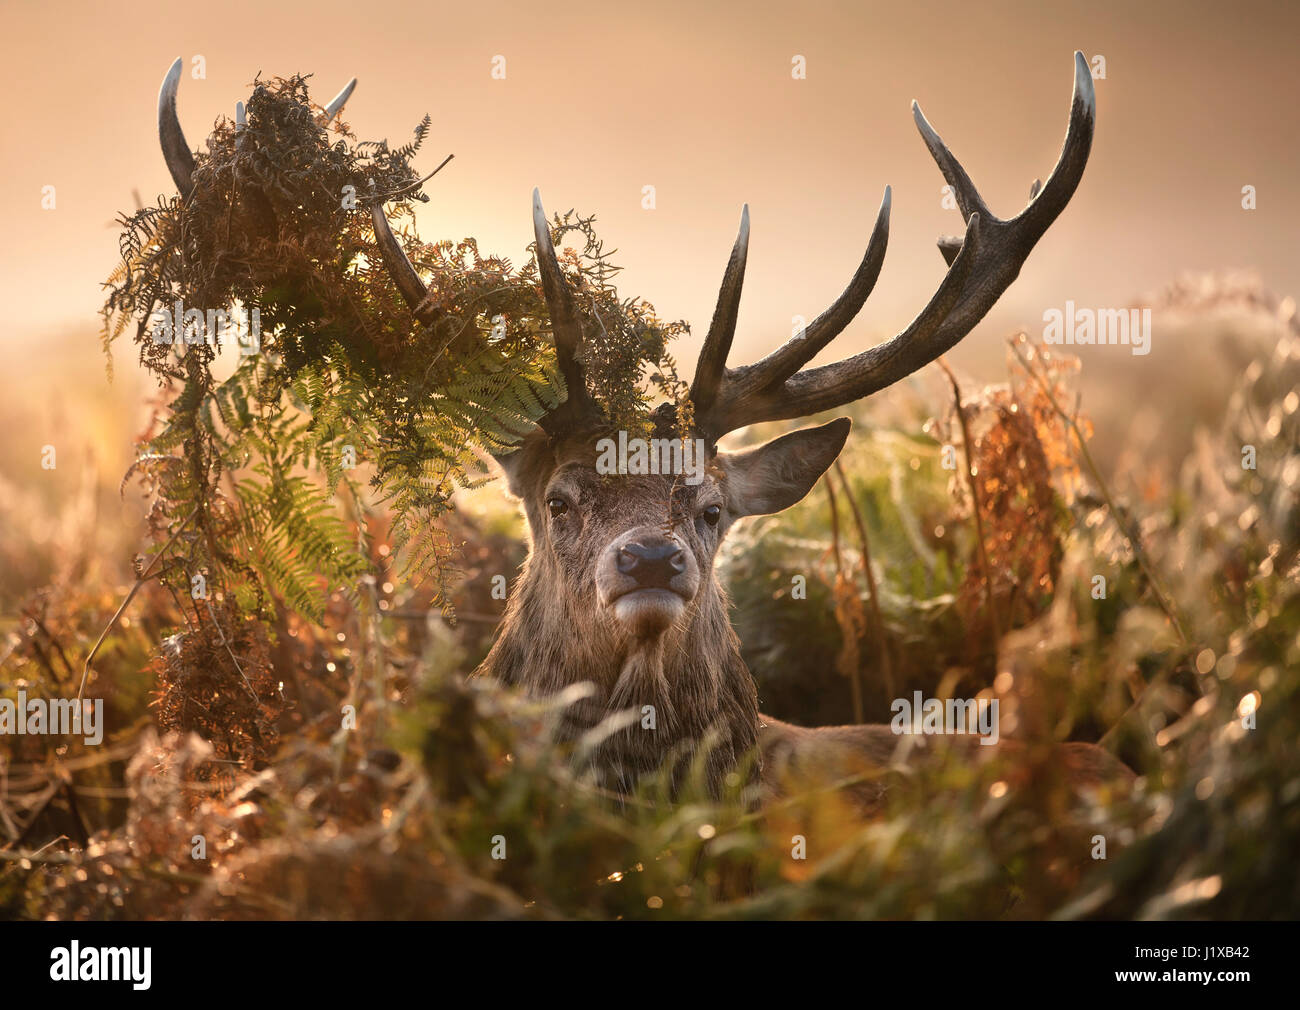 Portrait of red deer with a crown of ferns - Stock Image